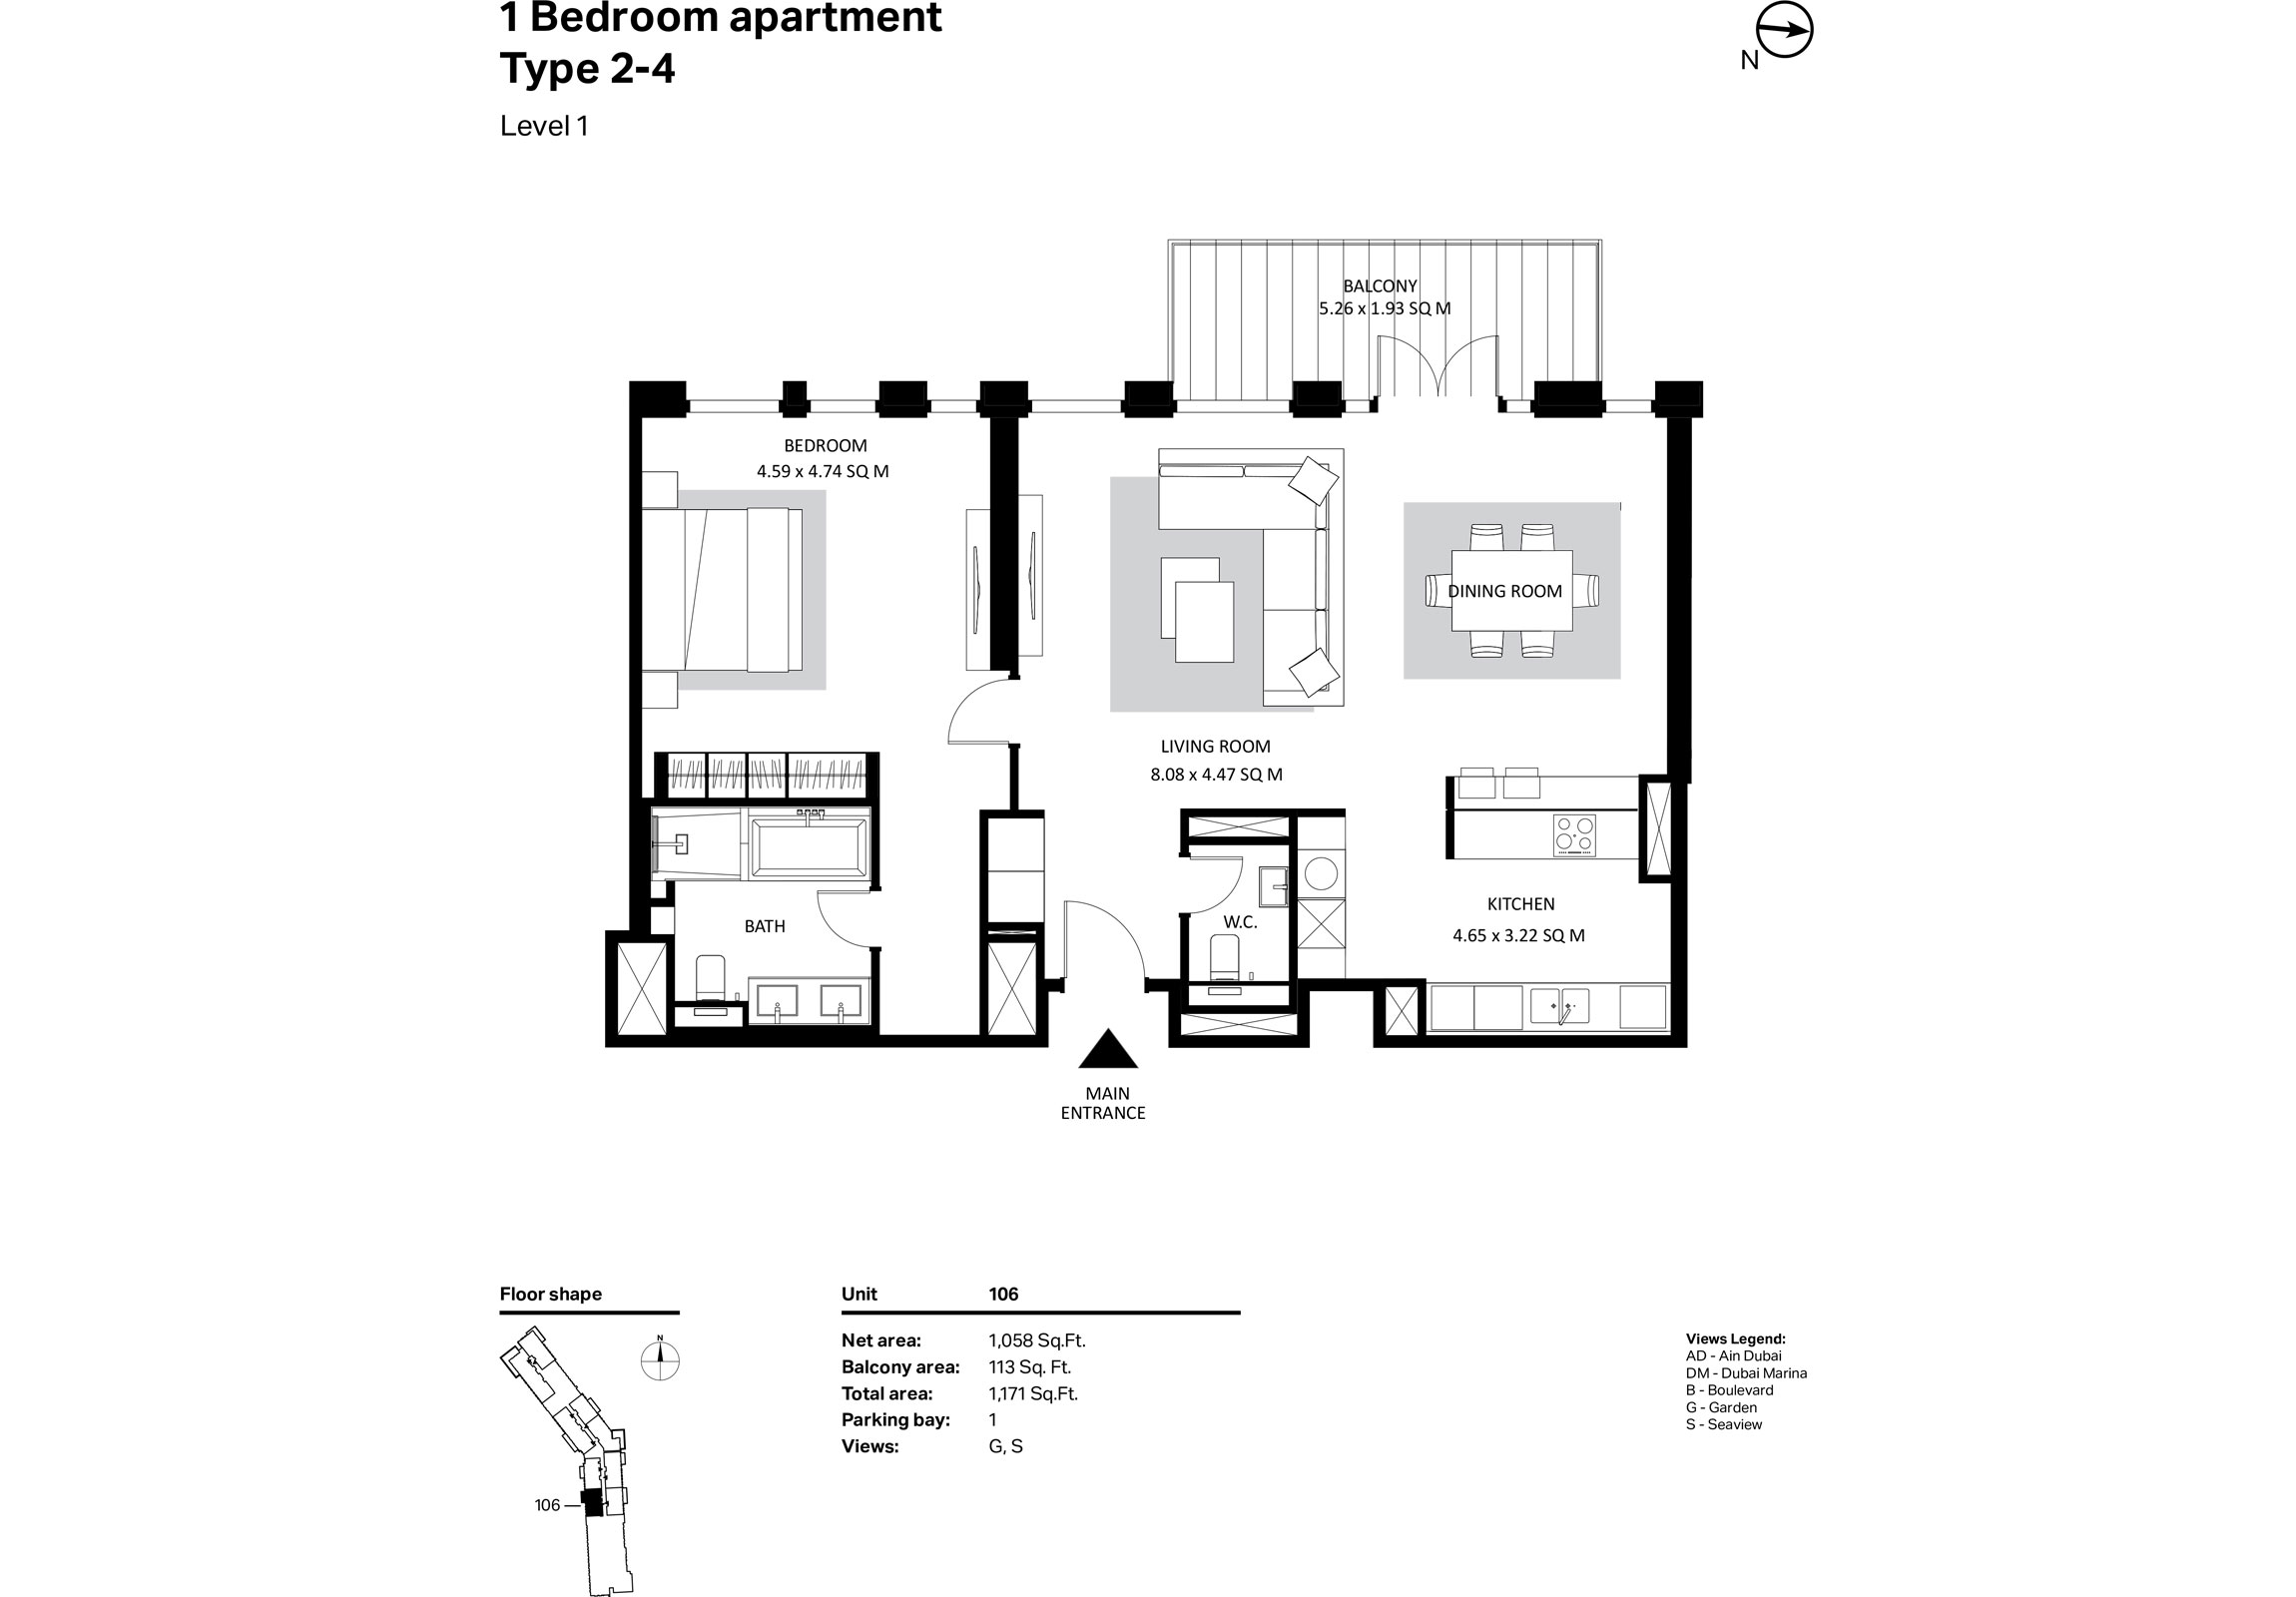 Building 2 - 1 Bedroom Type 2-4 Level 1 Size 1058 sq ft